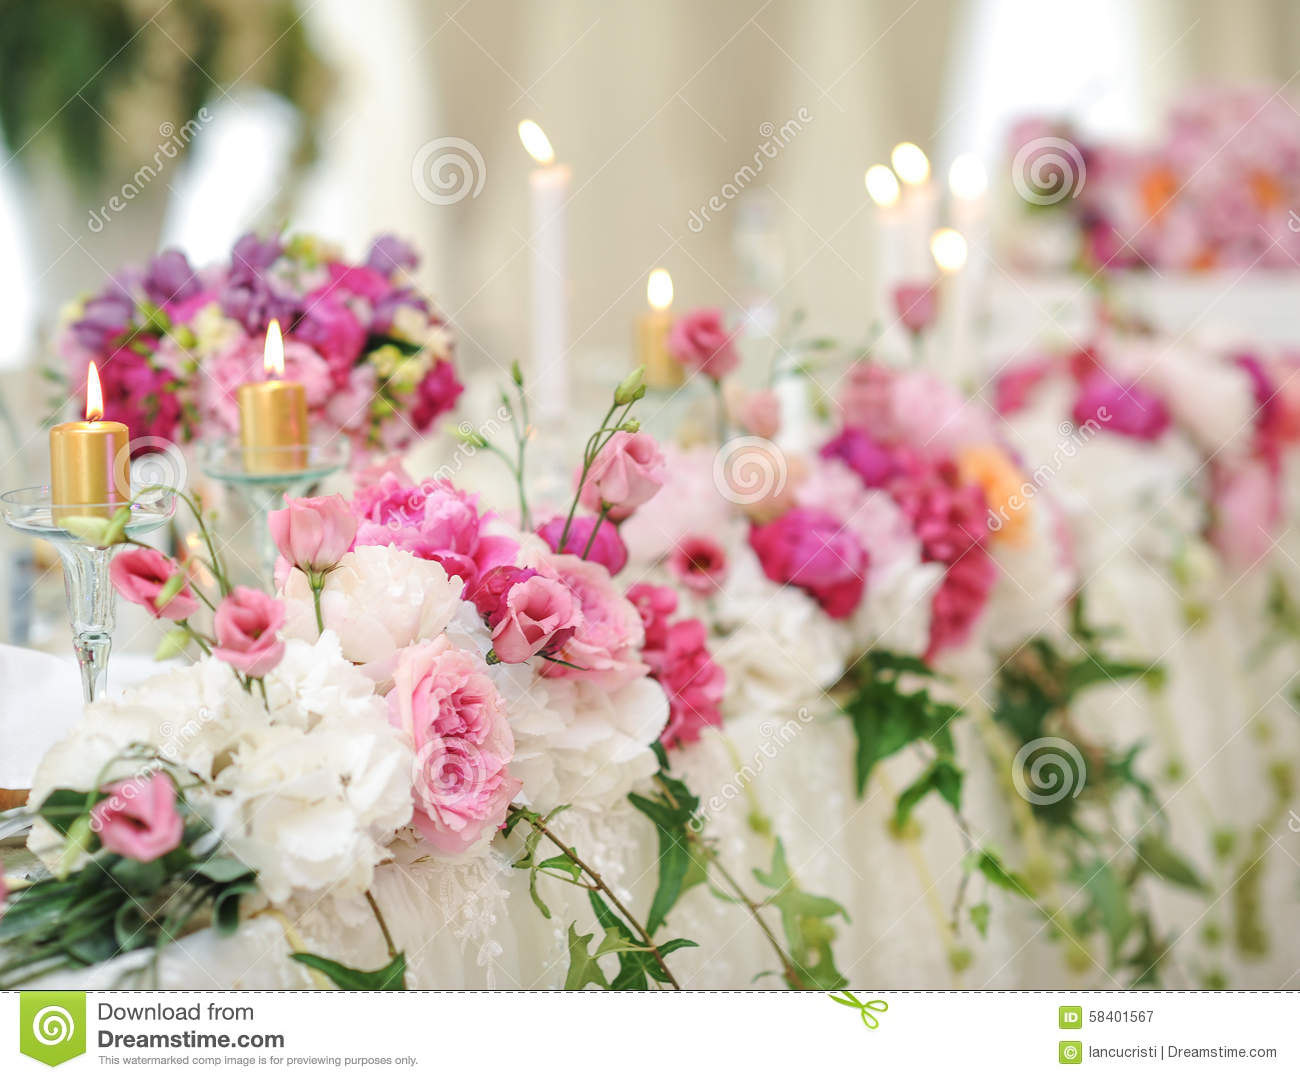 Wedding decoration on table floral arrangements and decoration wedding decoration on table floral arrangements and decoration arrangement of pink and white flowers in restaurant for event stock image image of junglespirit Choice Image